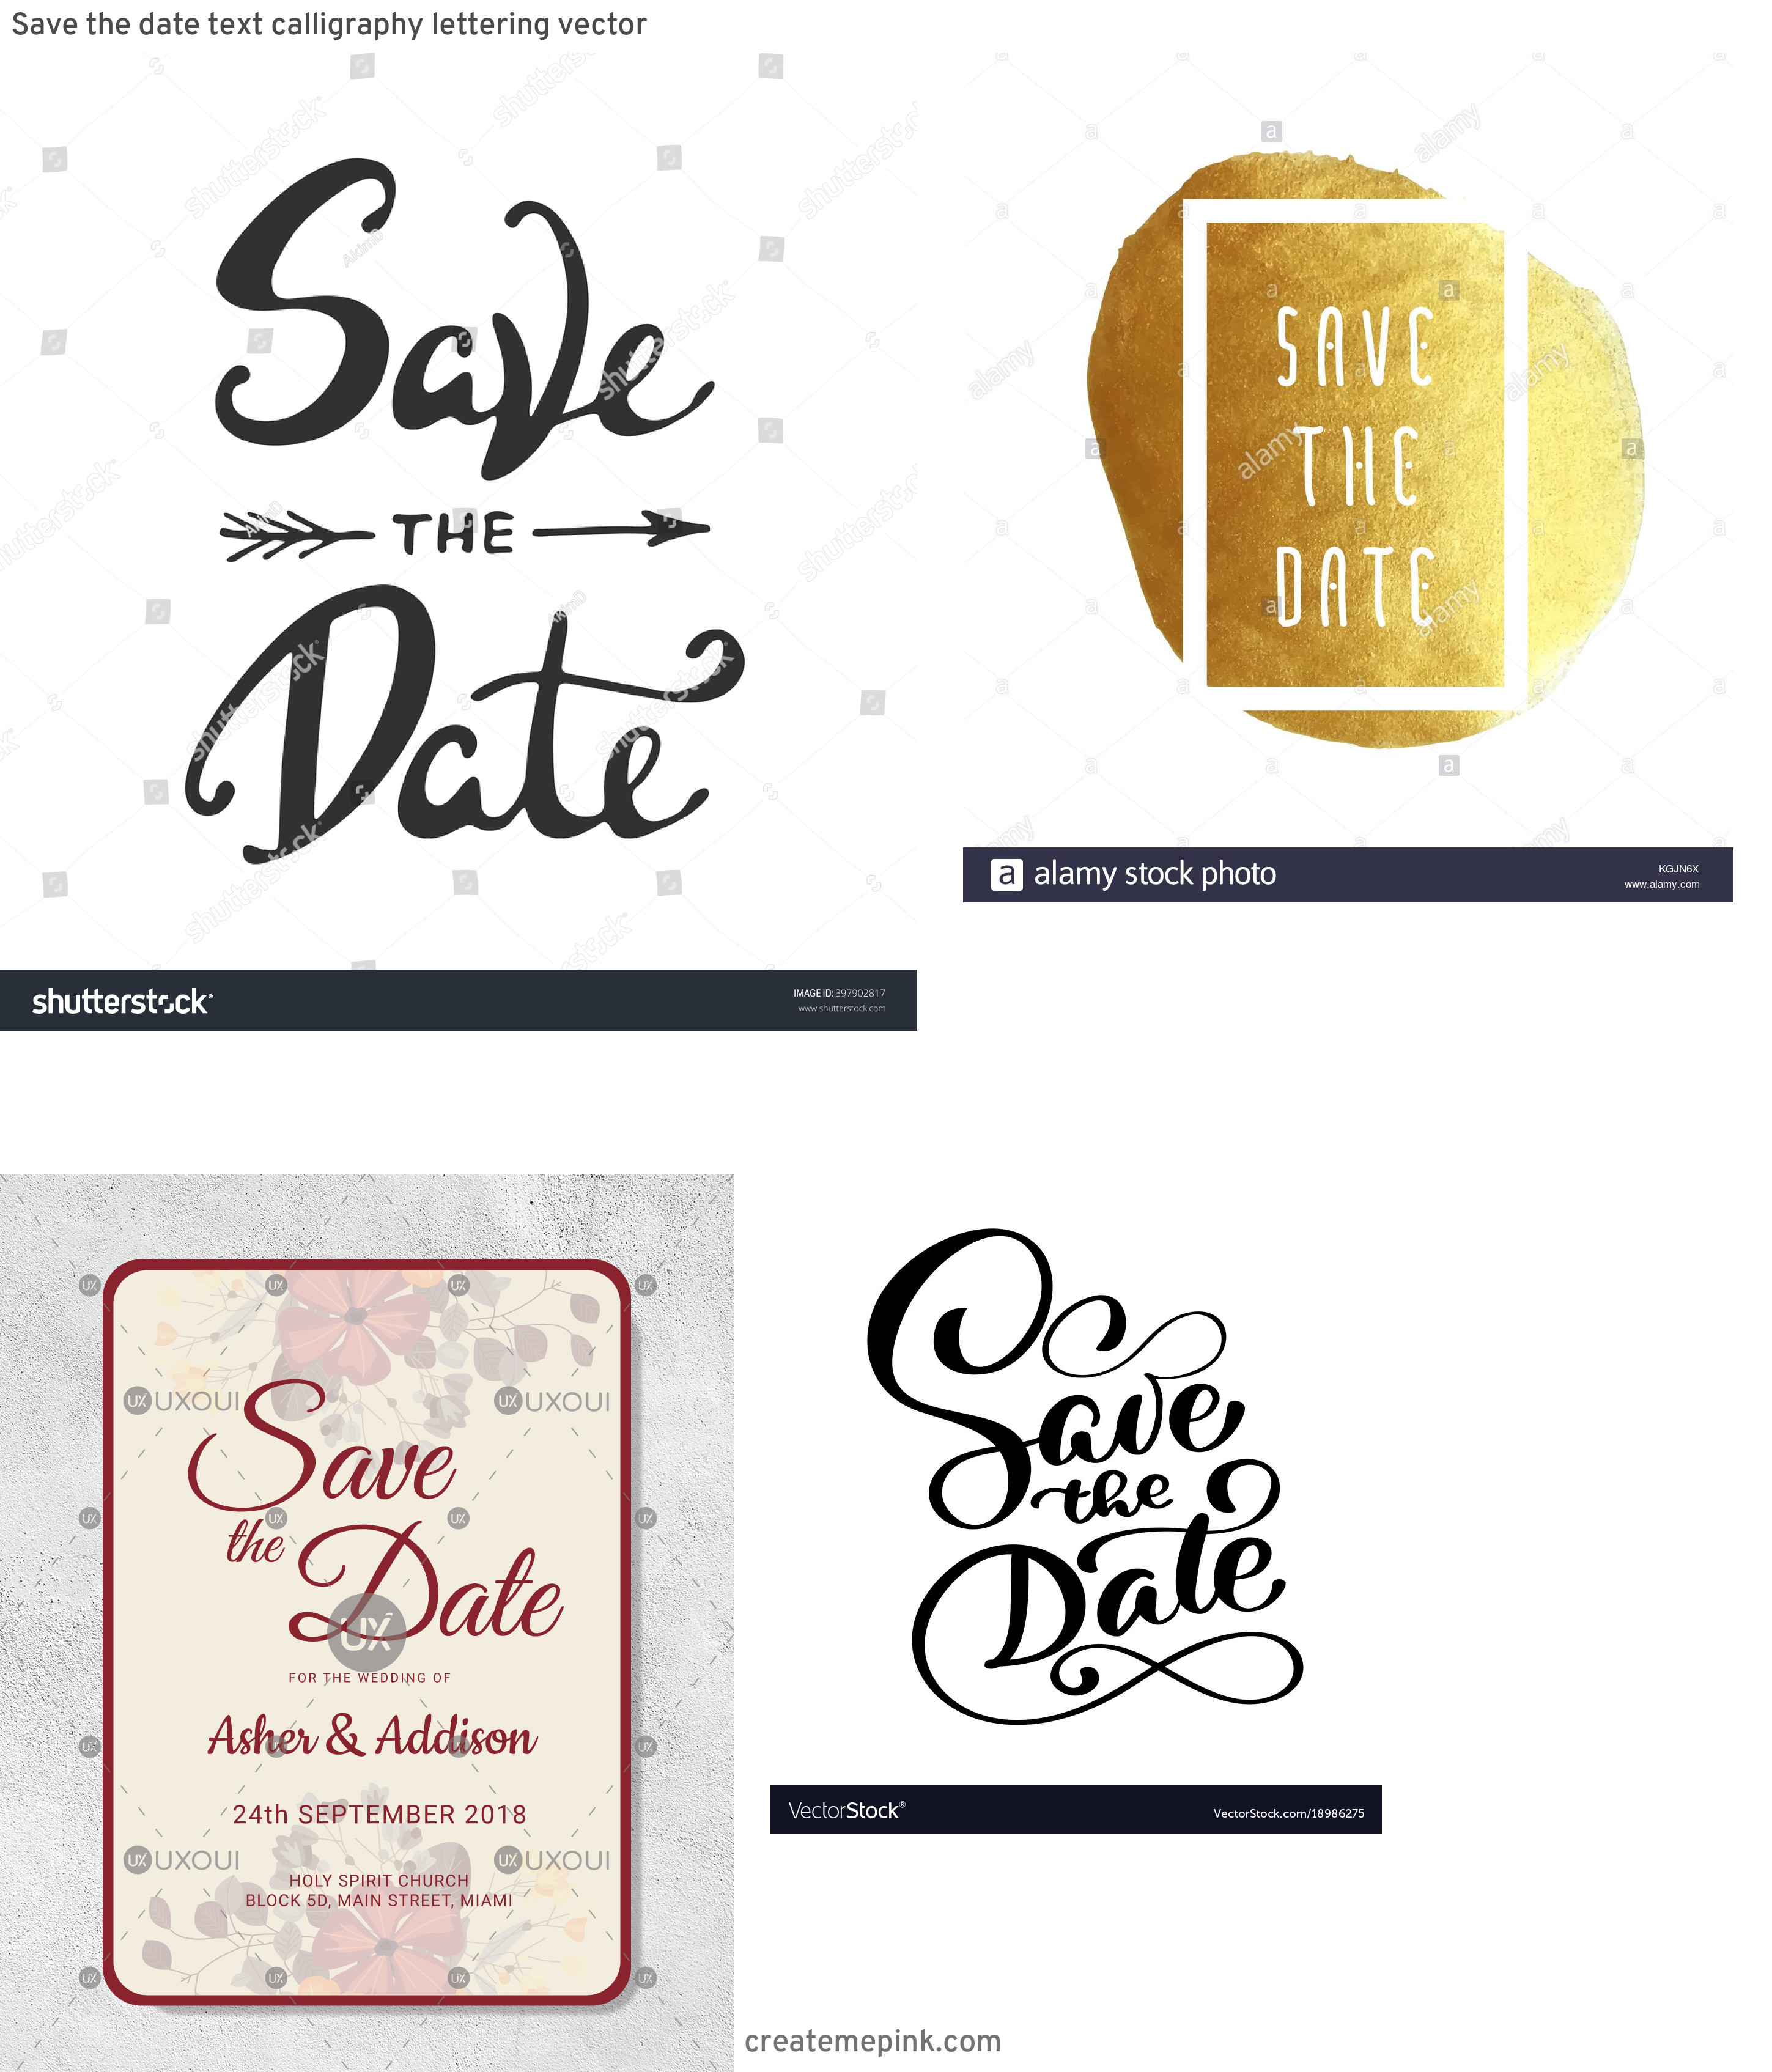 Save The Date Vector: Save The Date Text Calligraphy Lettering Vector